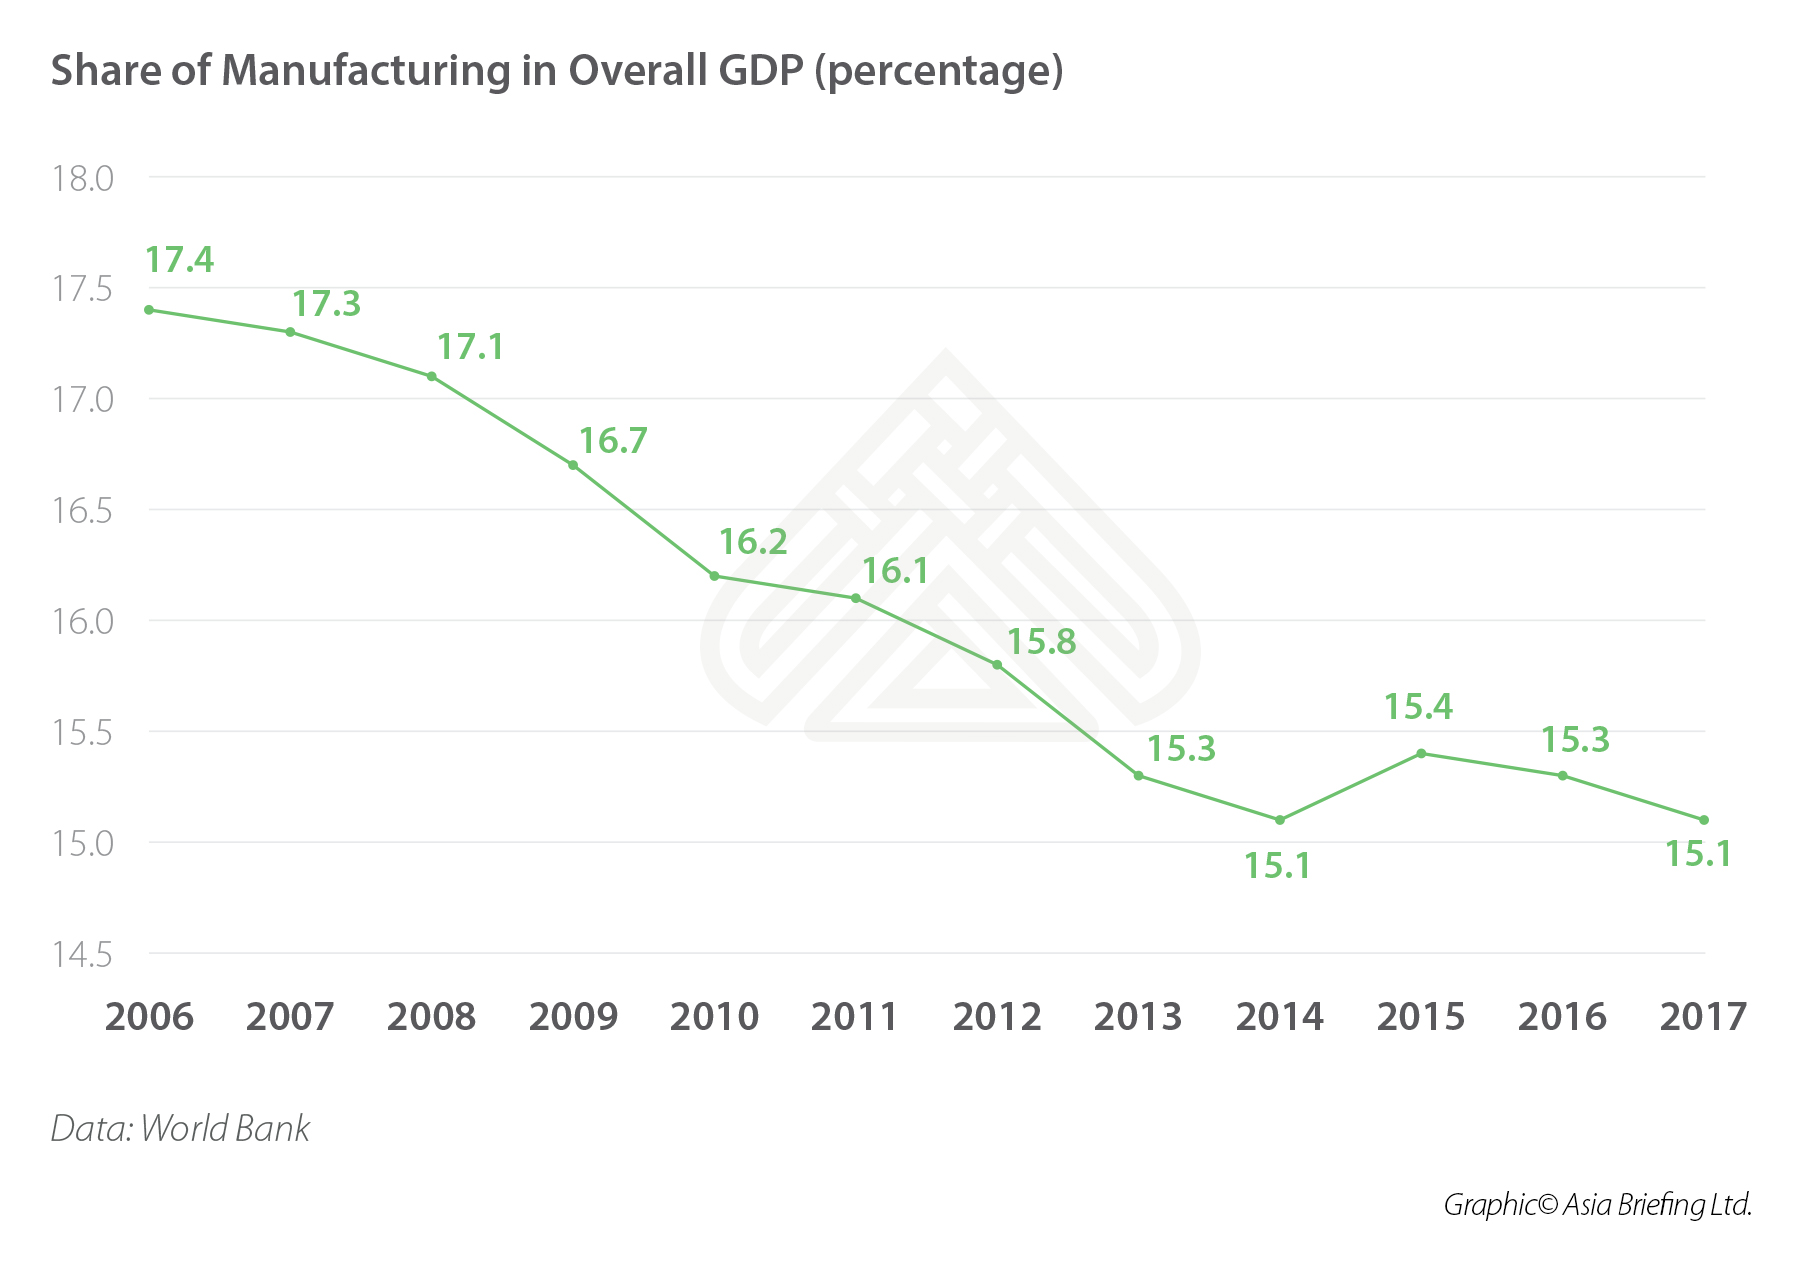 Share of manufacturing in India's GDP